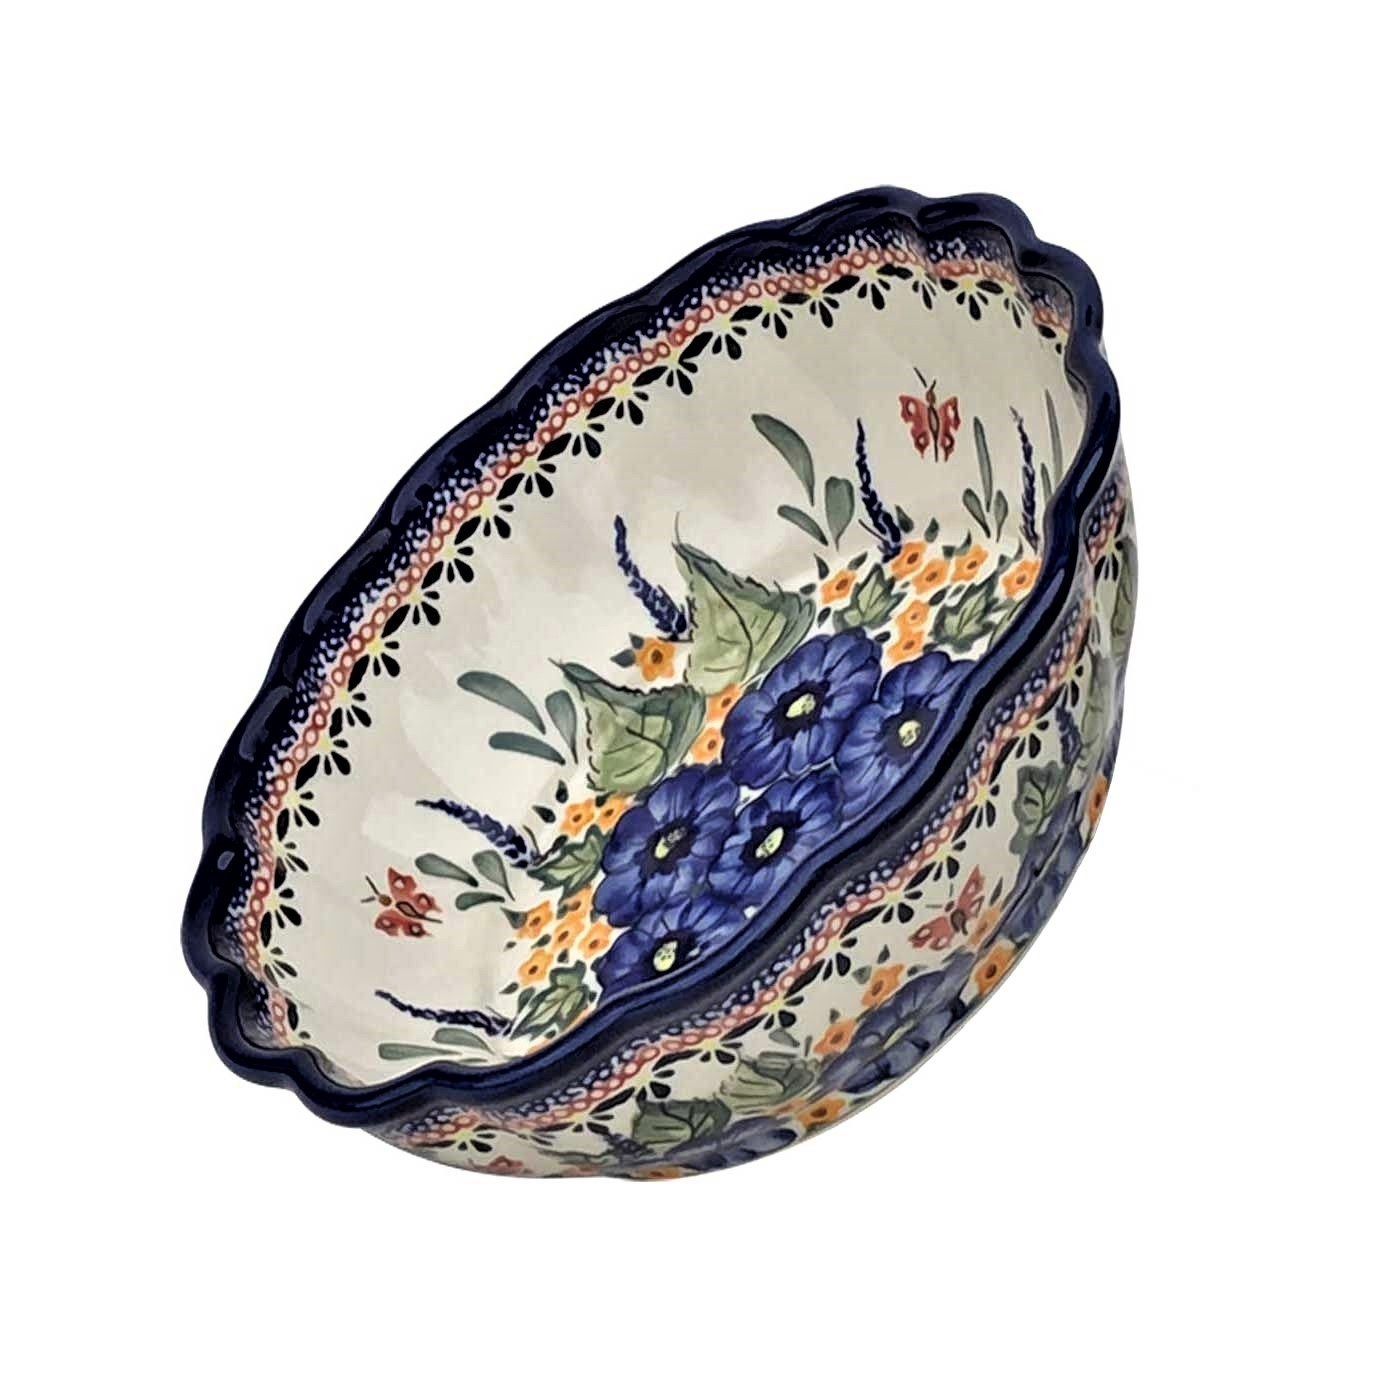 Pottery Avenue Scalloped Stoneware Serving-Baker Bowl - 1278-208AR Strawberry Butterfly